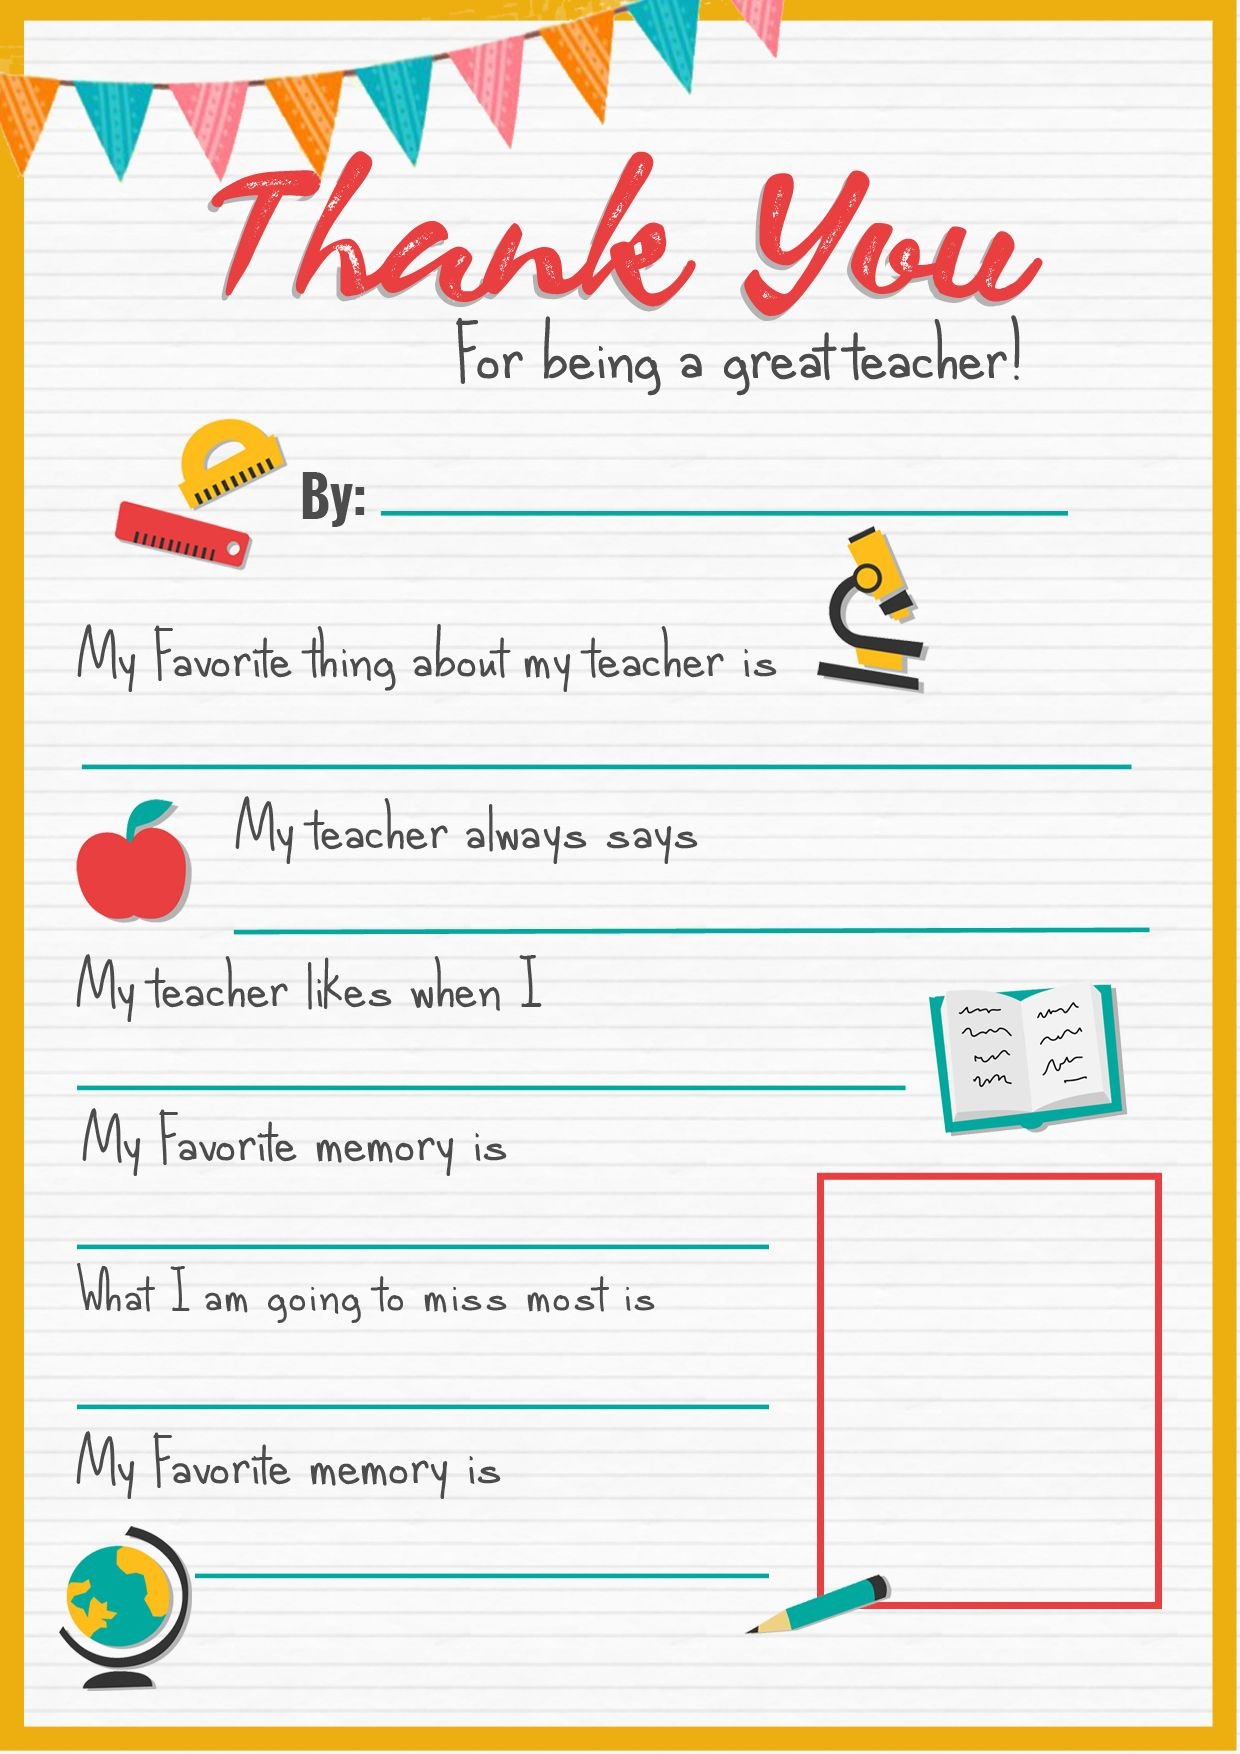 Thank You Teacher - A Free Printable | Stay At Home Mum | Teacher - All About My Teacher Free Printable